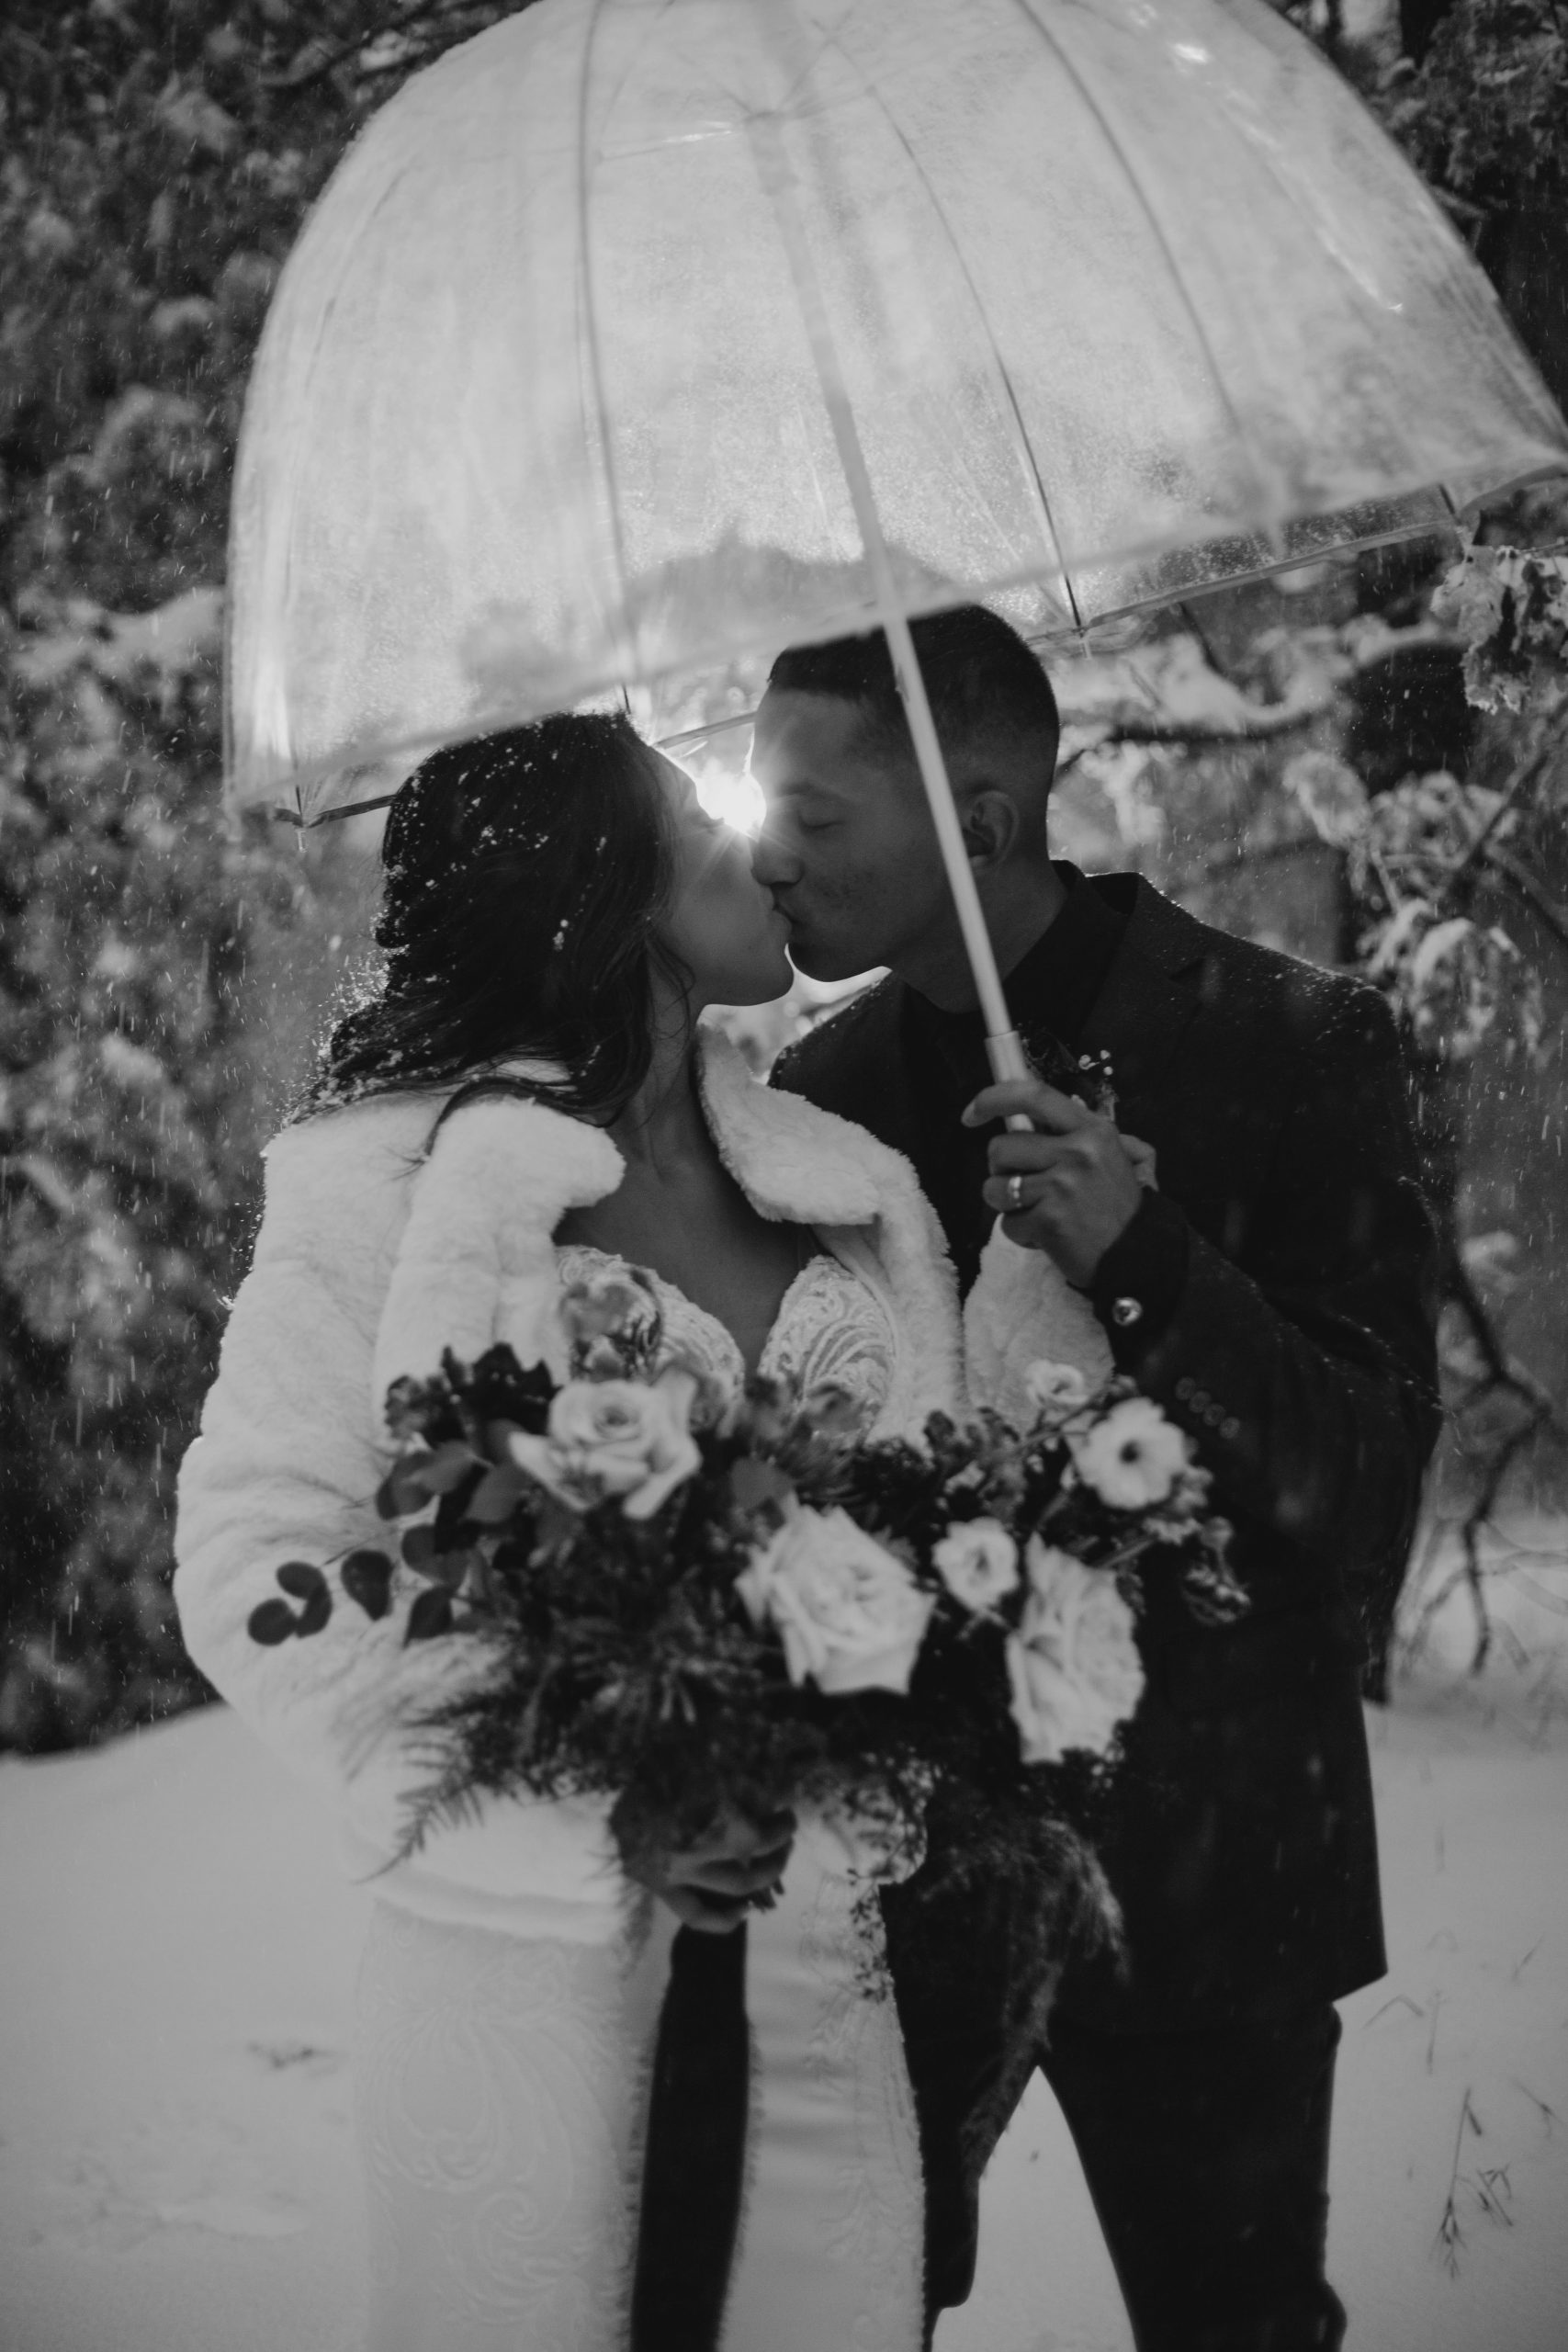 Bride and Groom portraits in the snow in Arrowhead Pine Rose Cabins, image by Fatima Elreda Photo